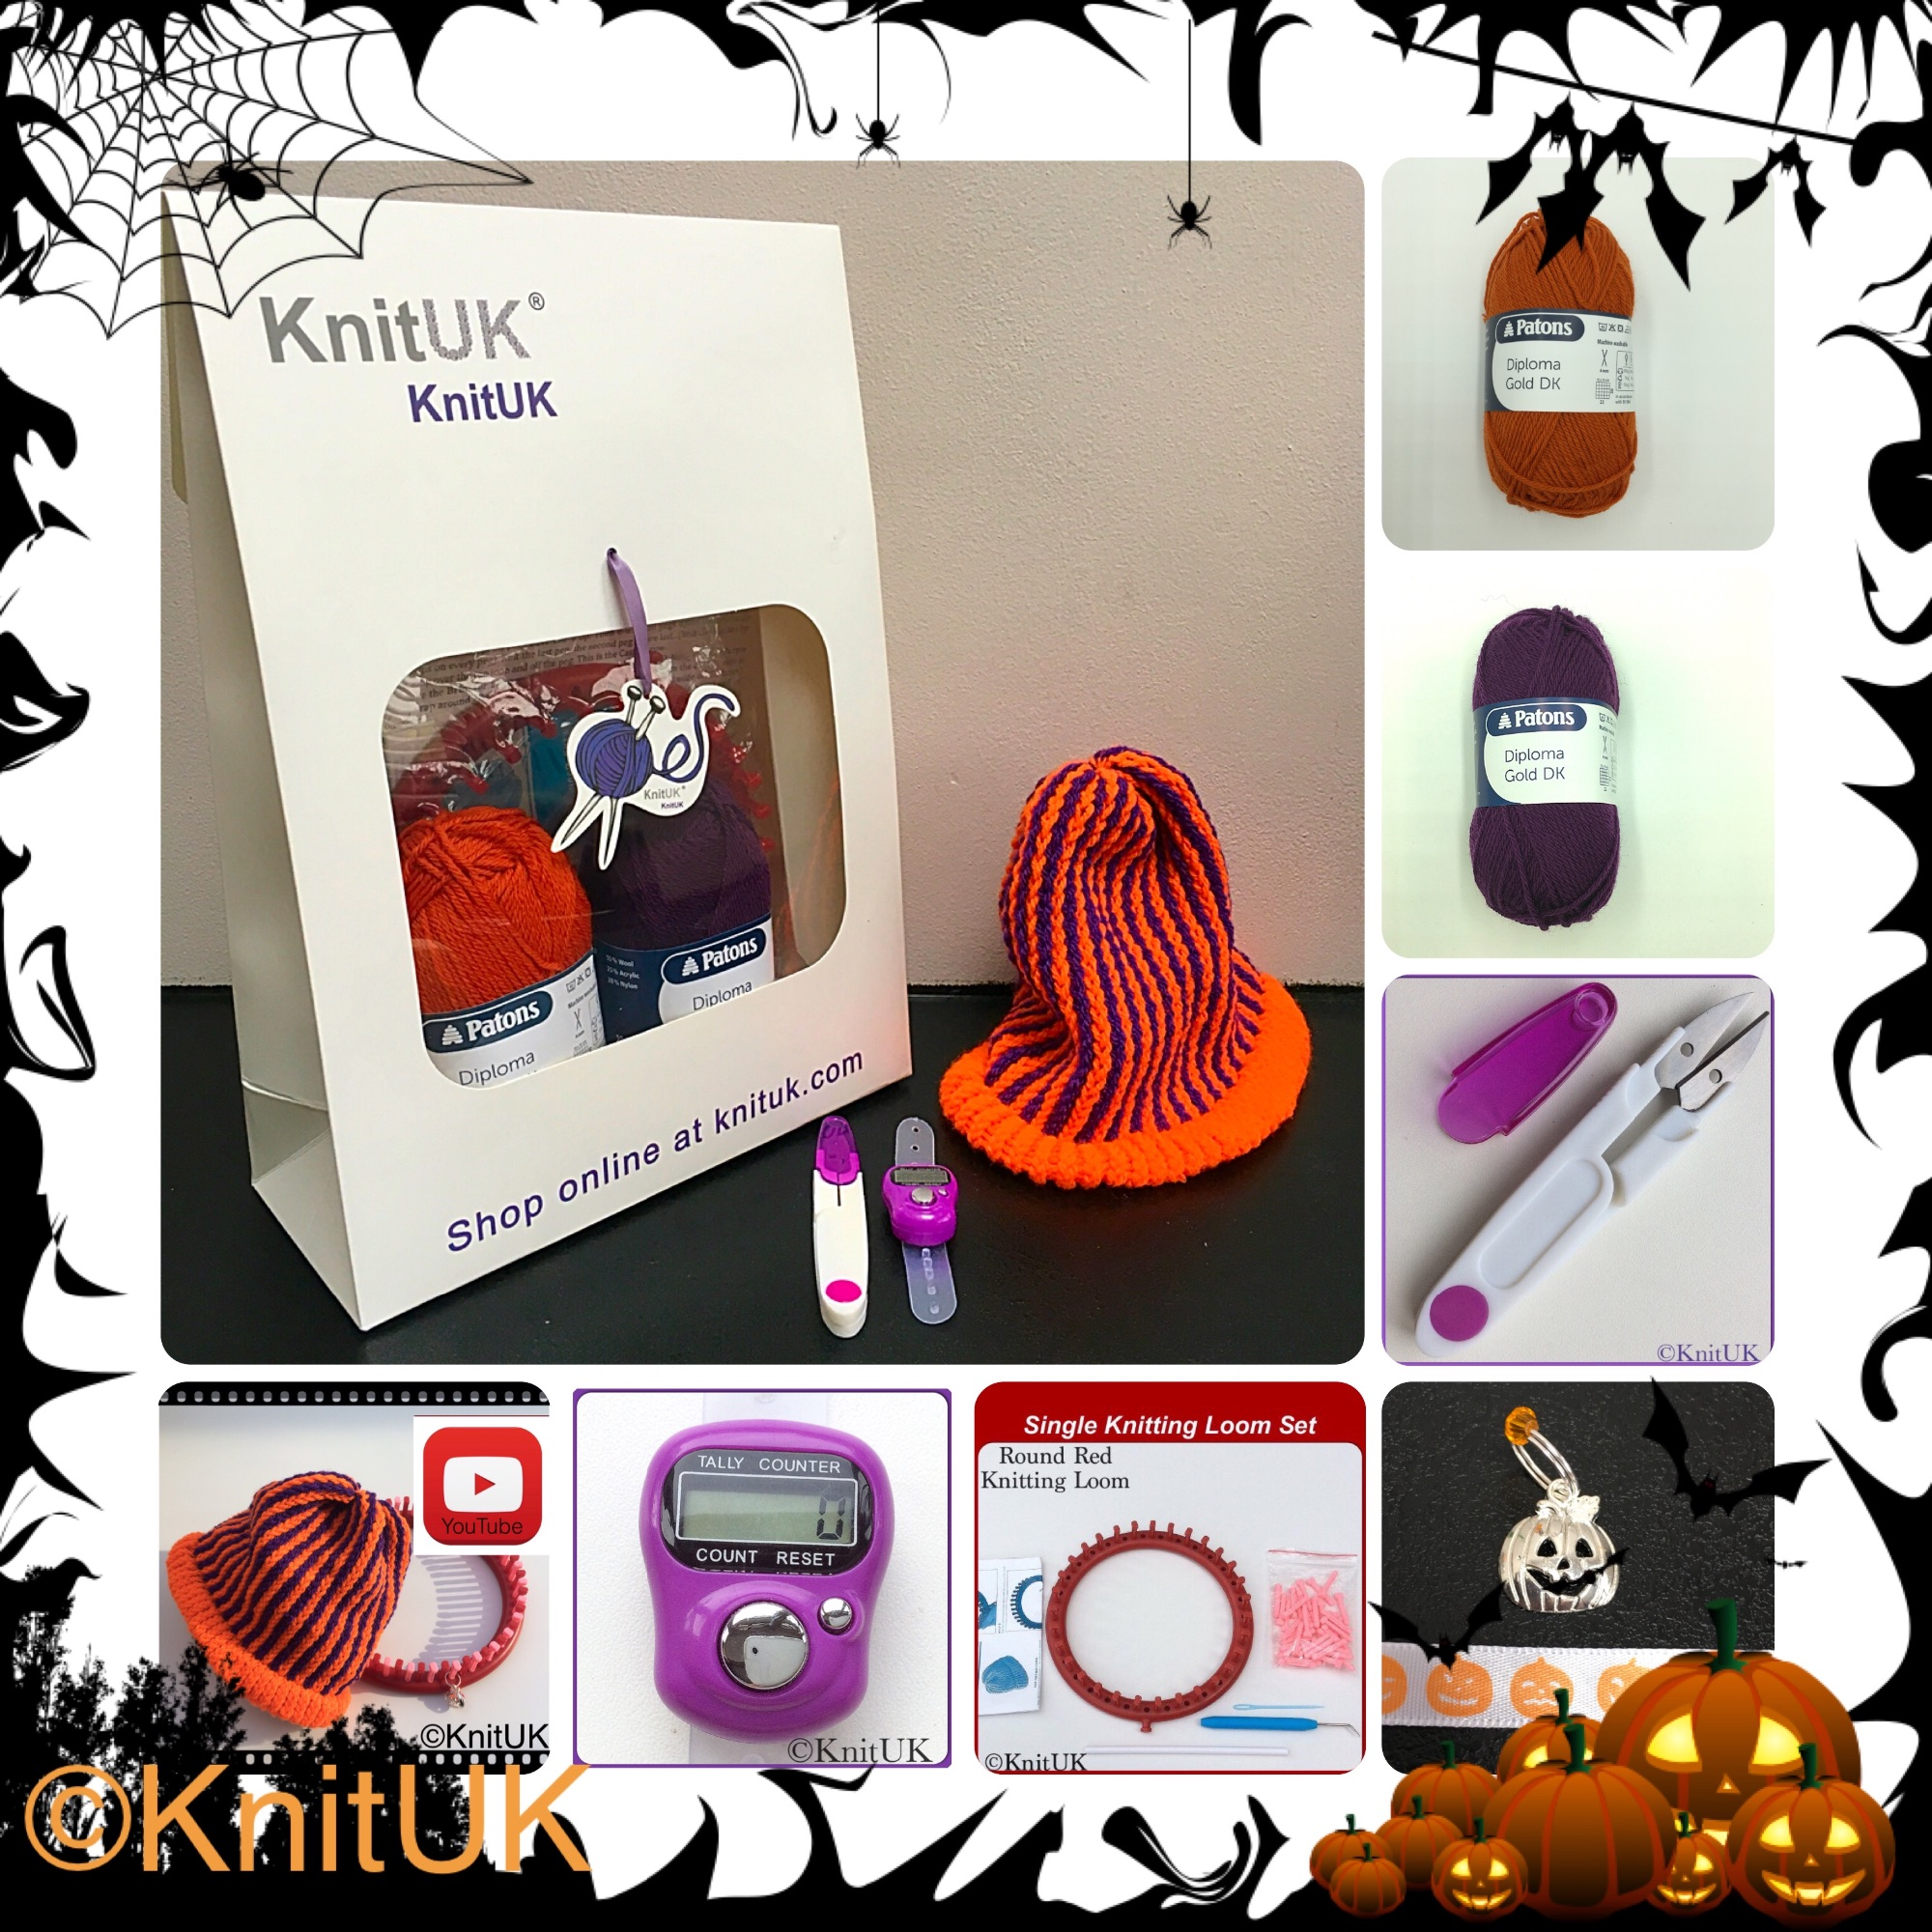 knituk Halloween kit with patons diploma gold dk yarn